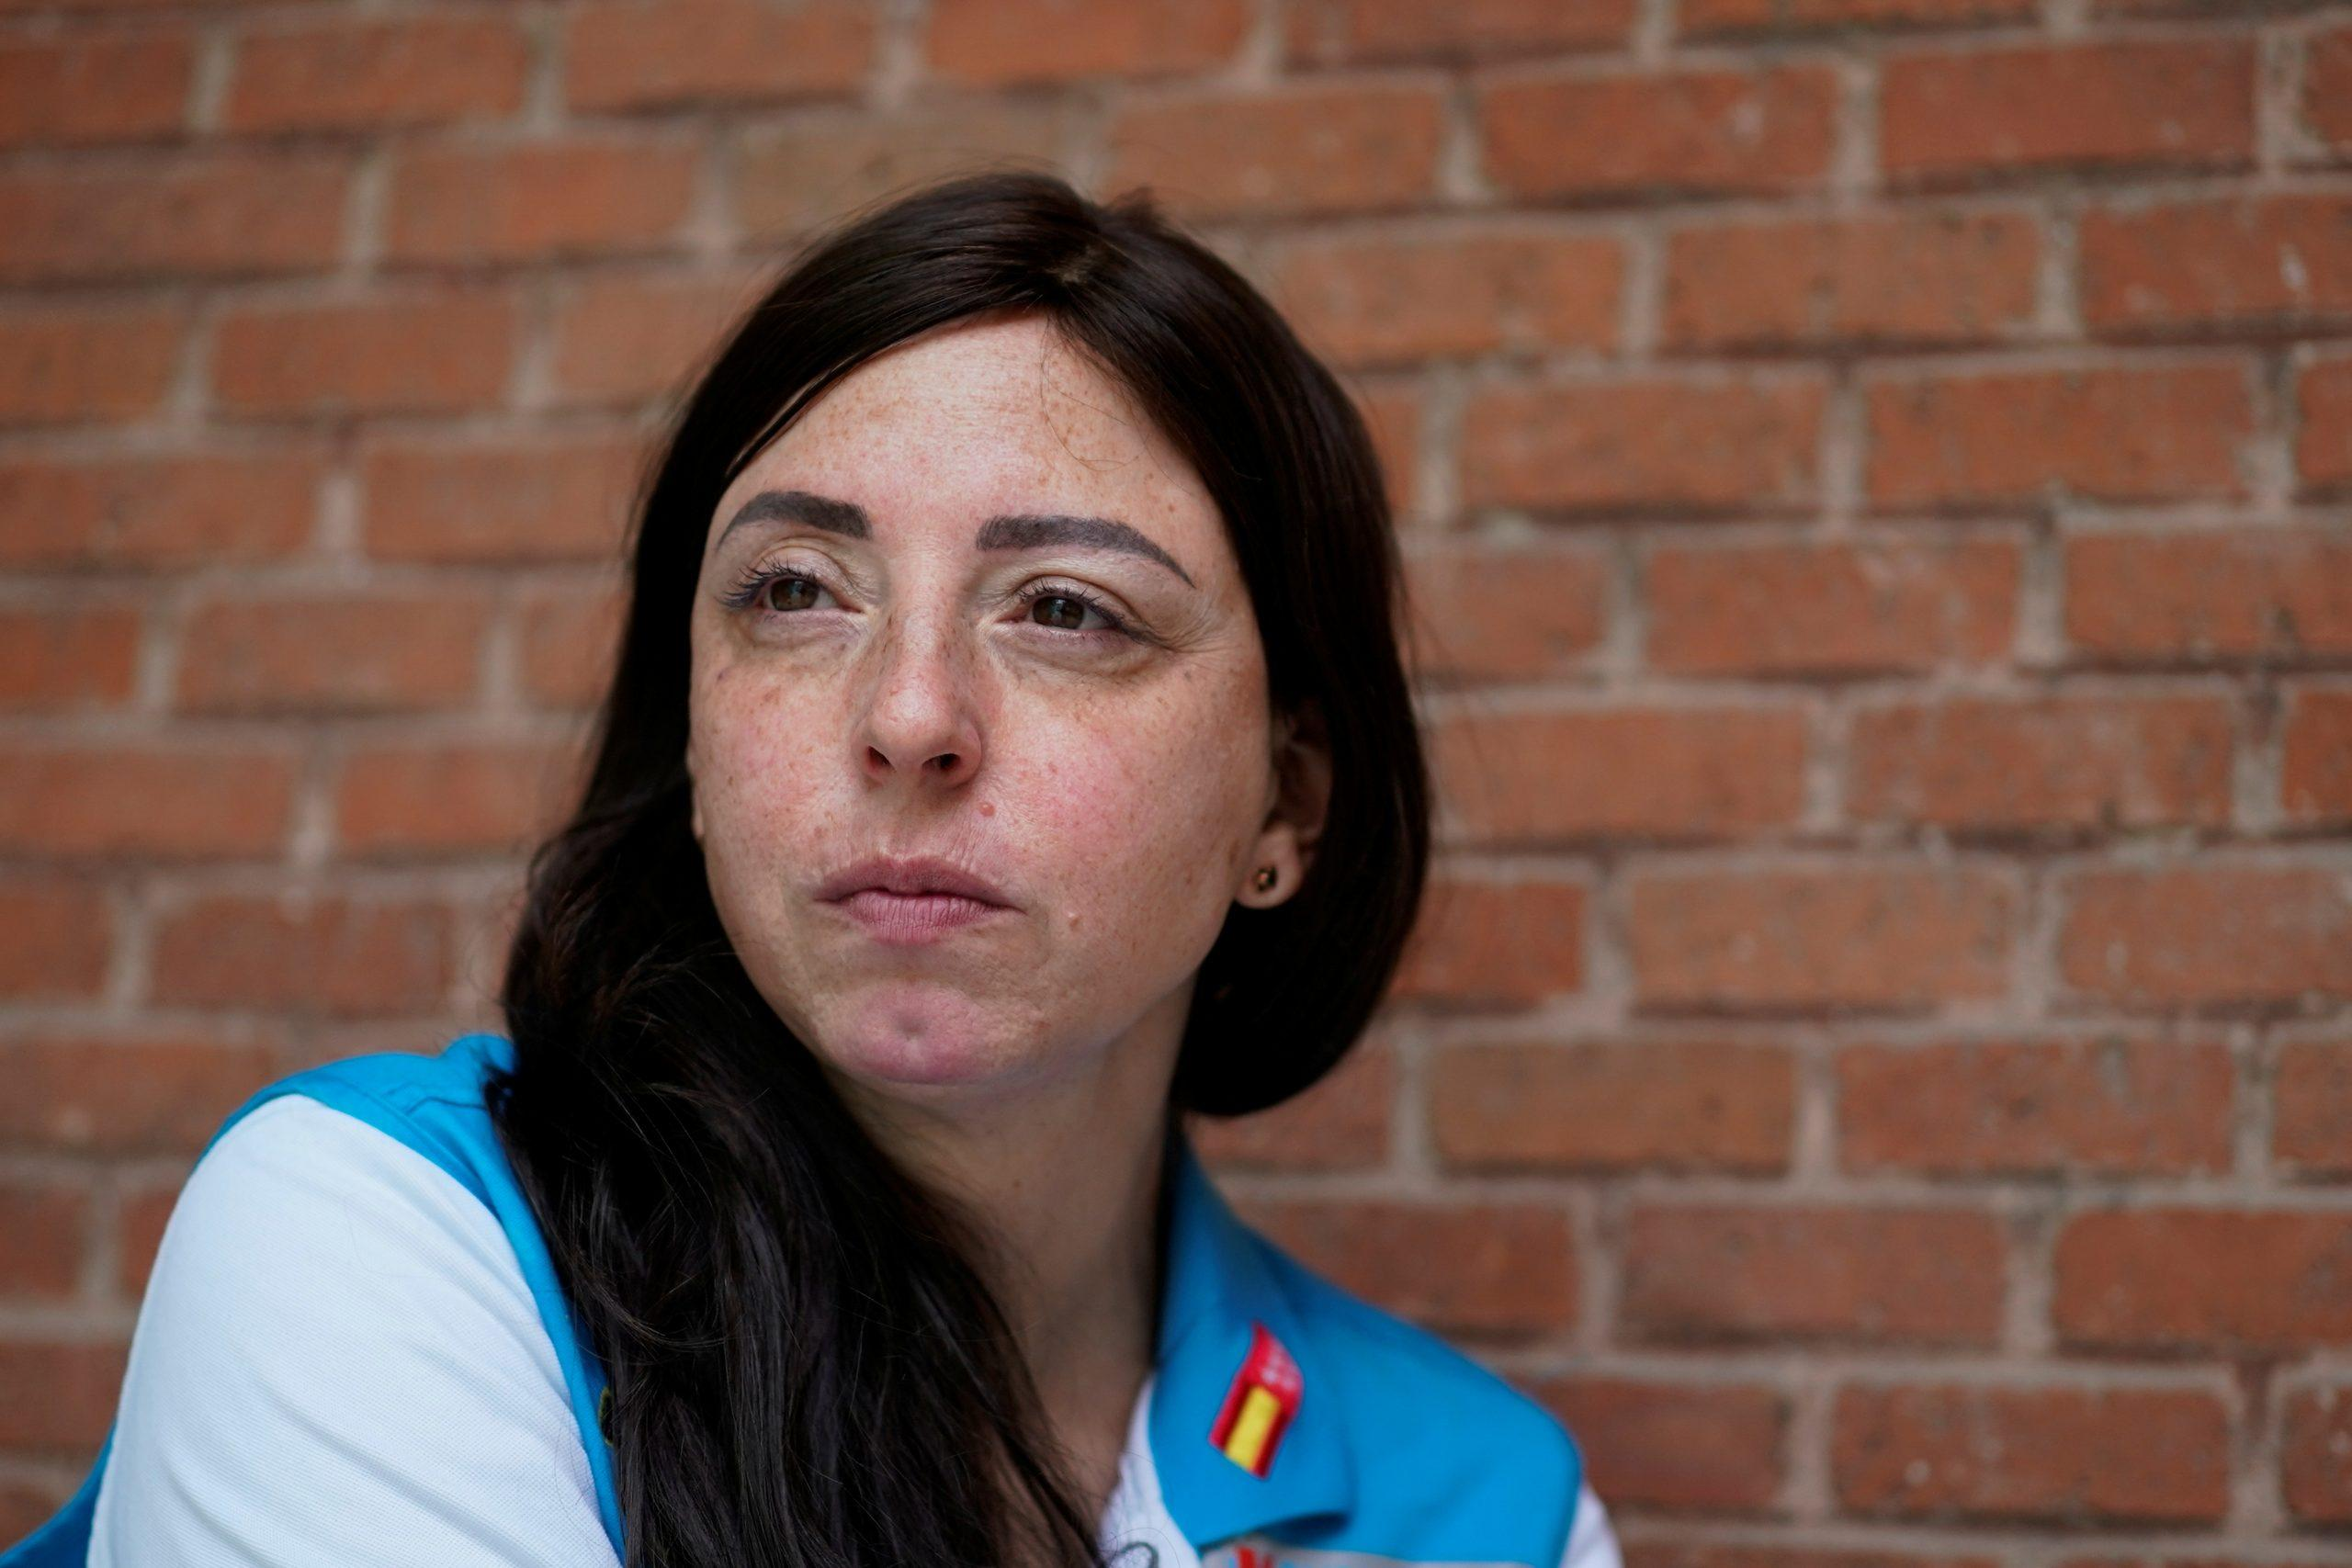 'The best job in the world': a Madrid ambulance doctor's dedication after a year of COVID